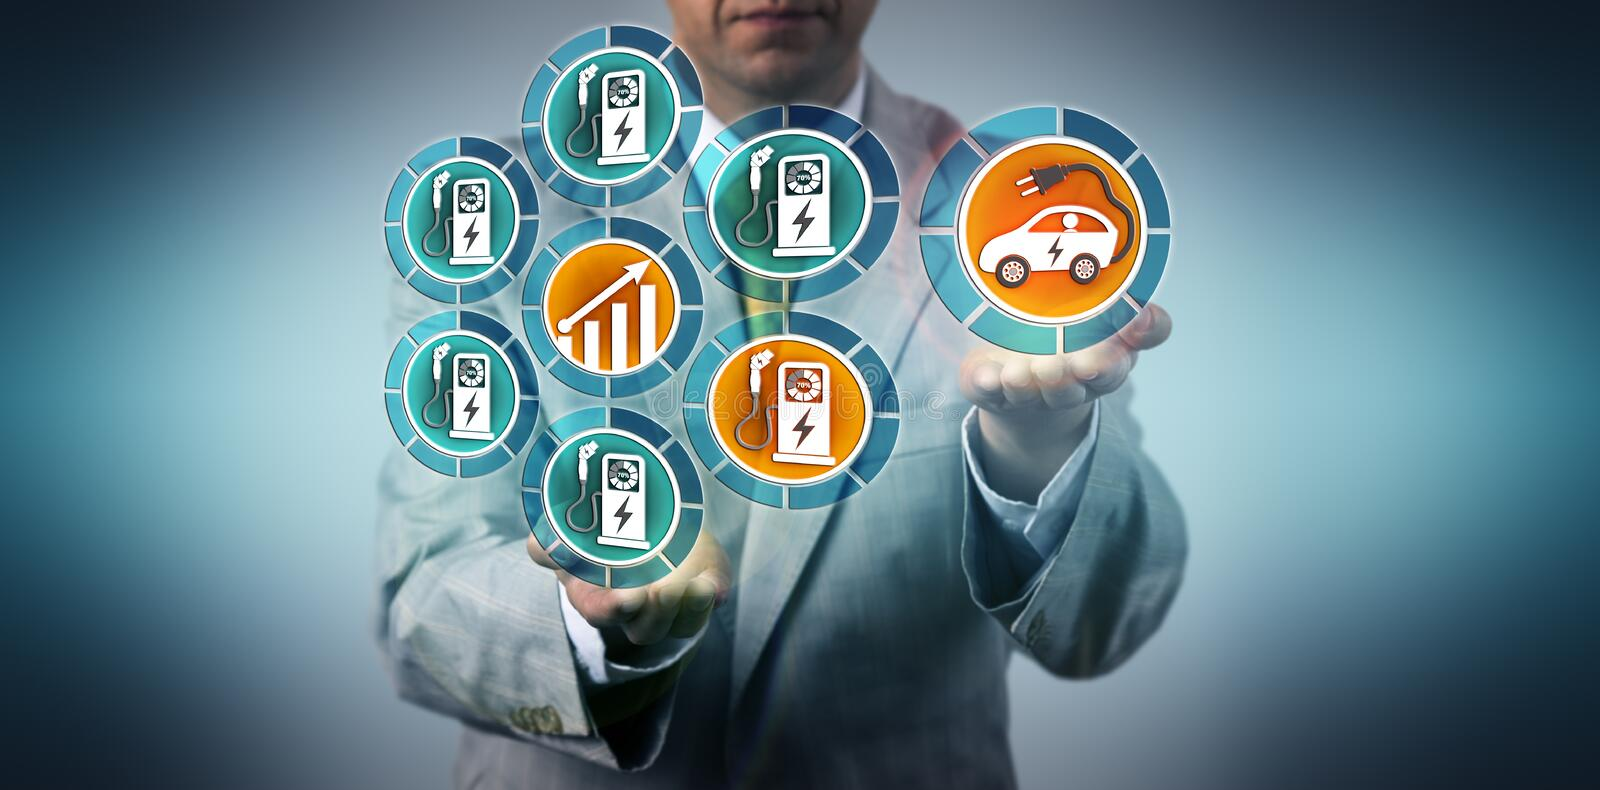 Manager Projecting Growth For EV Charging Ports royalty free stock photography